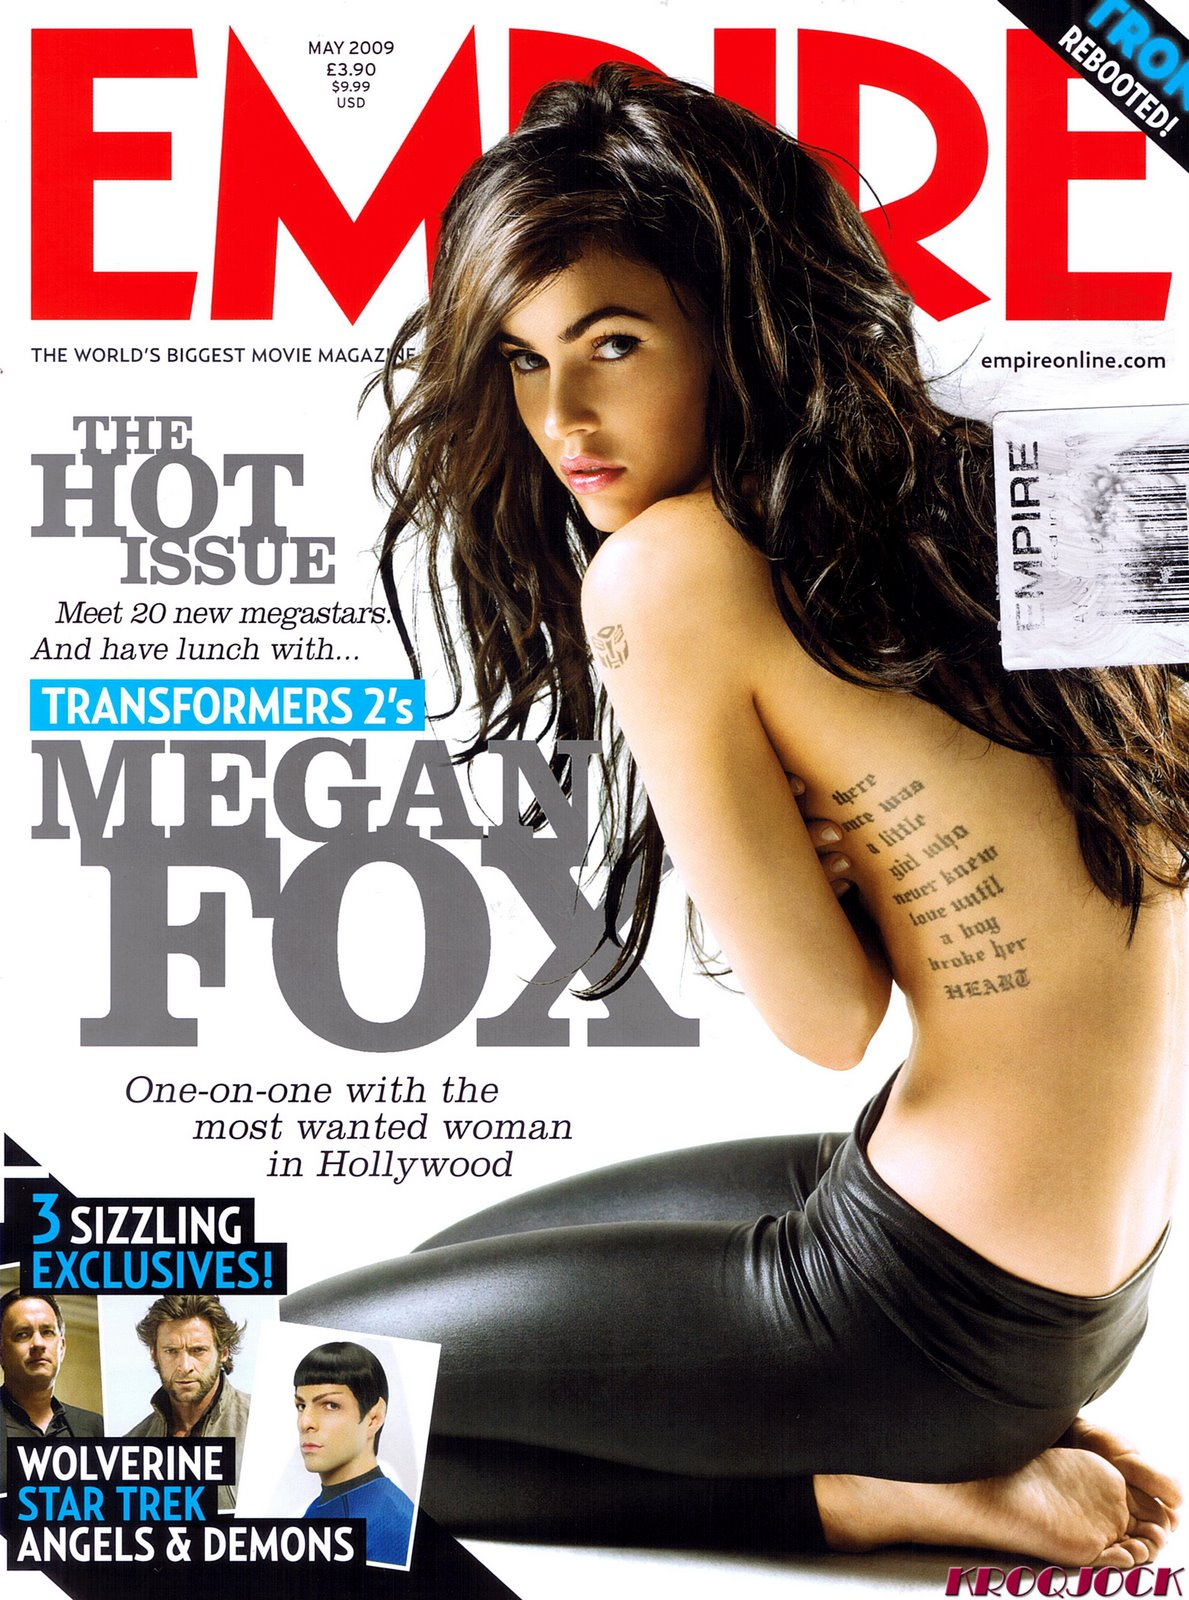 http://2.bp.blogspot.com/_KTqLxxzc3H0/SdN6HANgkaI/AAAAAAAAFMU/OZaW7RxJlOM/s1600/61256_Megan_Fox.EMPIRE_UK.May_2009.Scanned_by_KROQJOCK.UHQ1_122_828lo